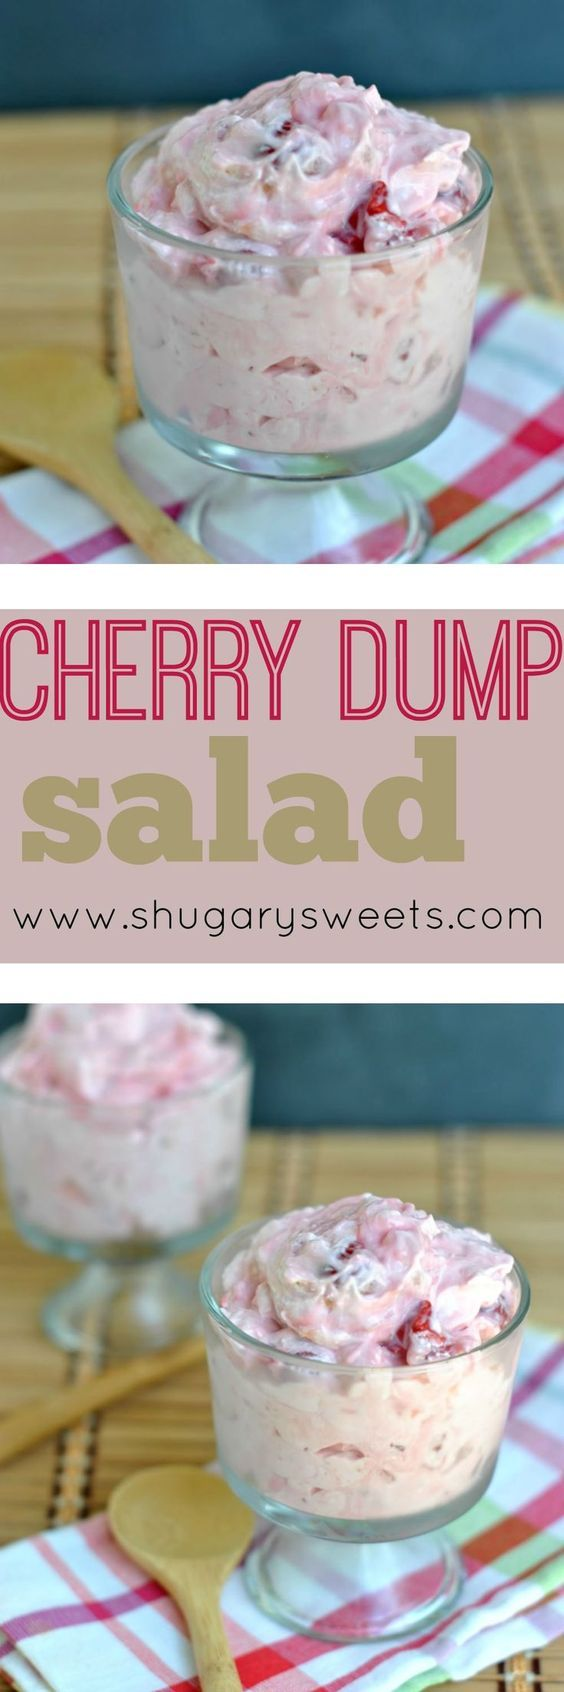 A side dish for your next potluck or BBQ. Seriously, take your 4 ingredients, dump them in a bowl, and allow to set. Easy peasy Cherry Dump Salad.